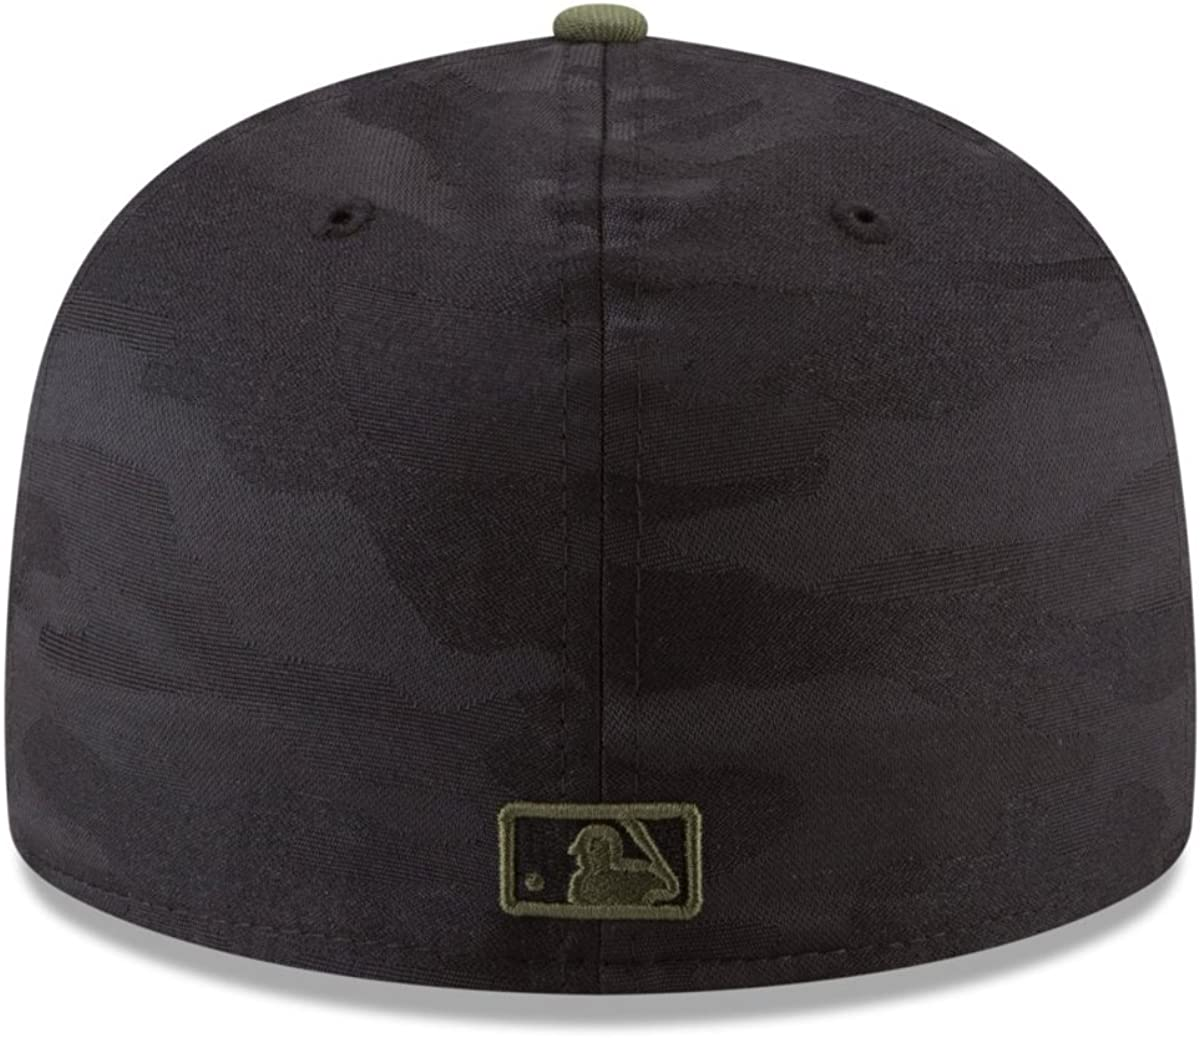 New Era Detroit Tigers Memorial Day Fitted Cap 59fifty Basecap Limited Special Edition